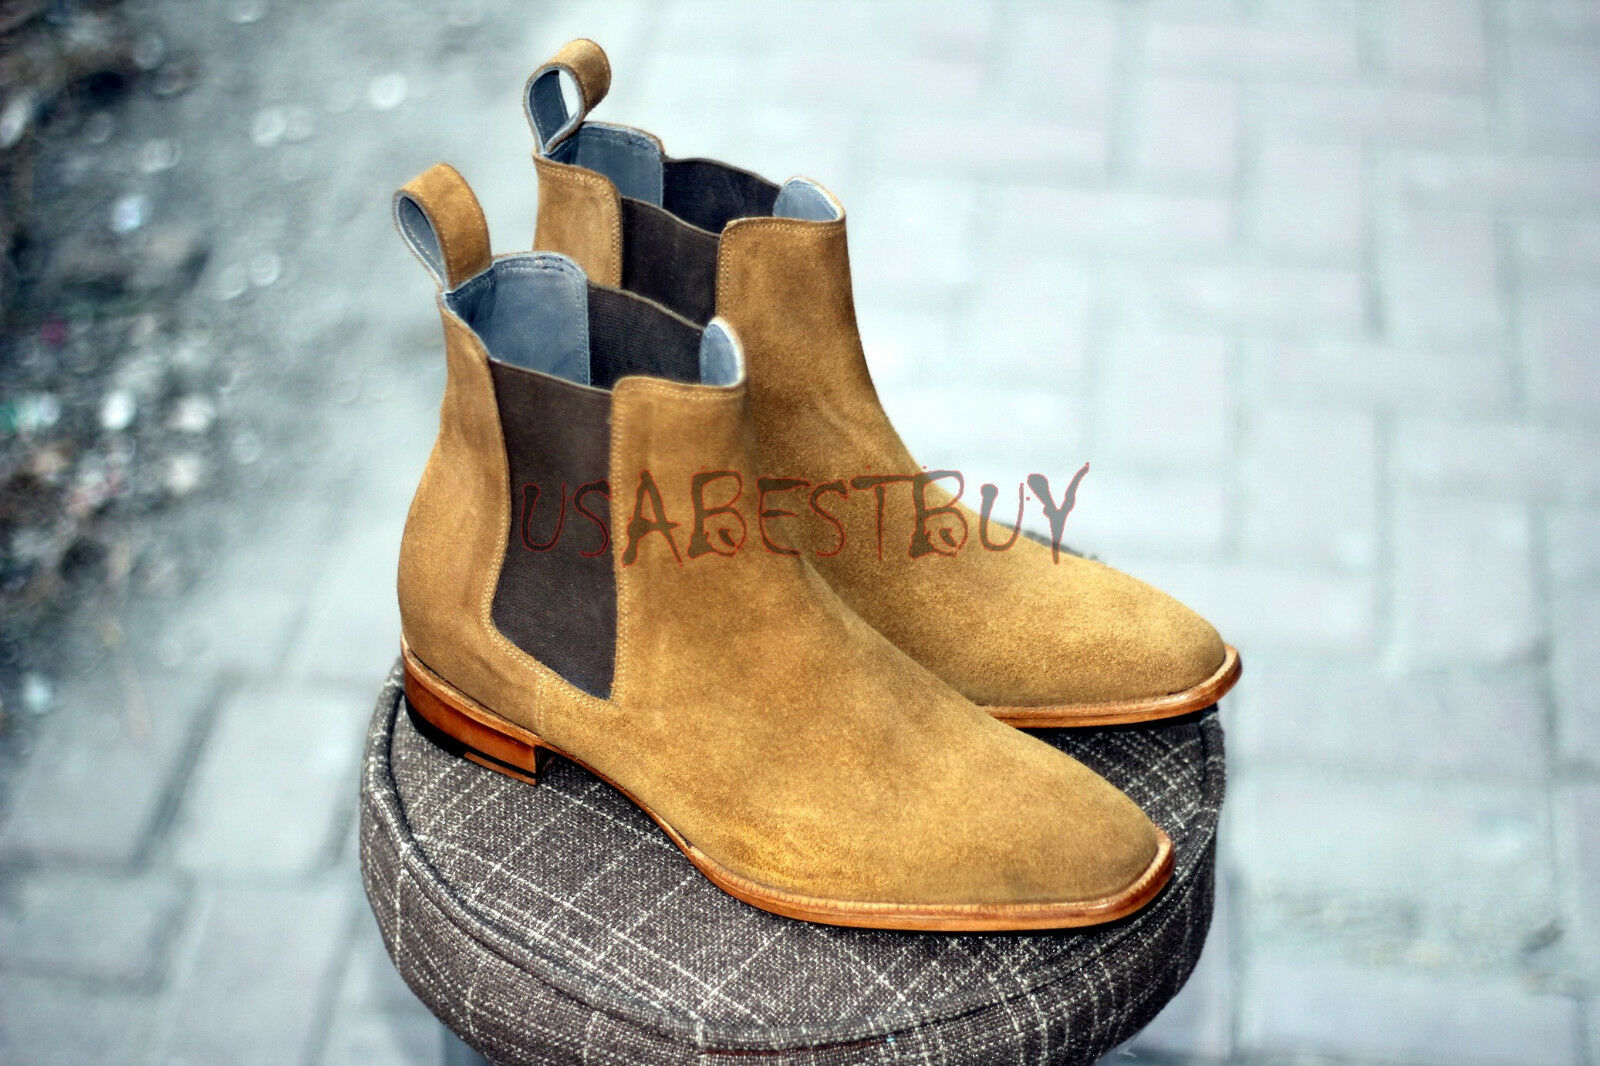 New Handmade Uomo Chelsea Suede Leather Boots in Tan suede Shade, Uomo suede Tan boots a036d3